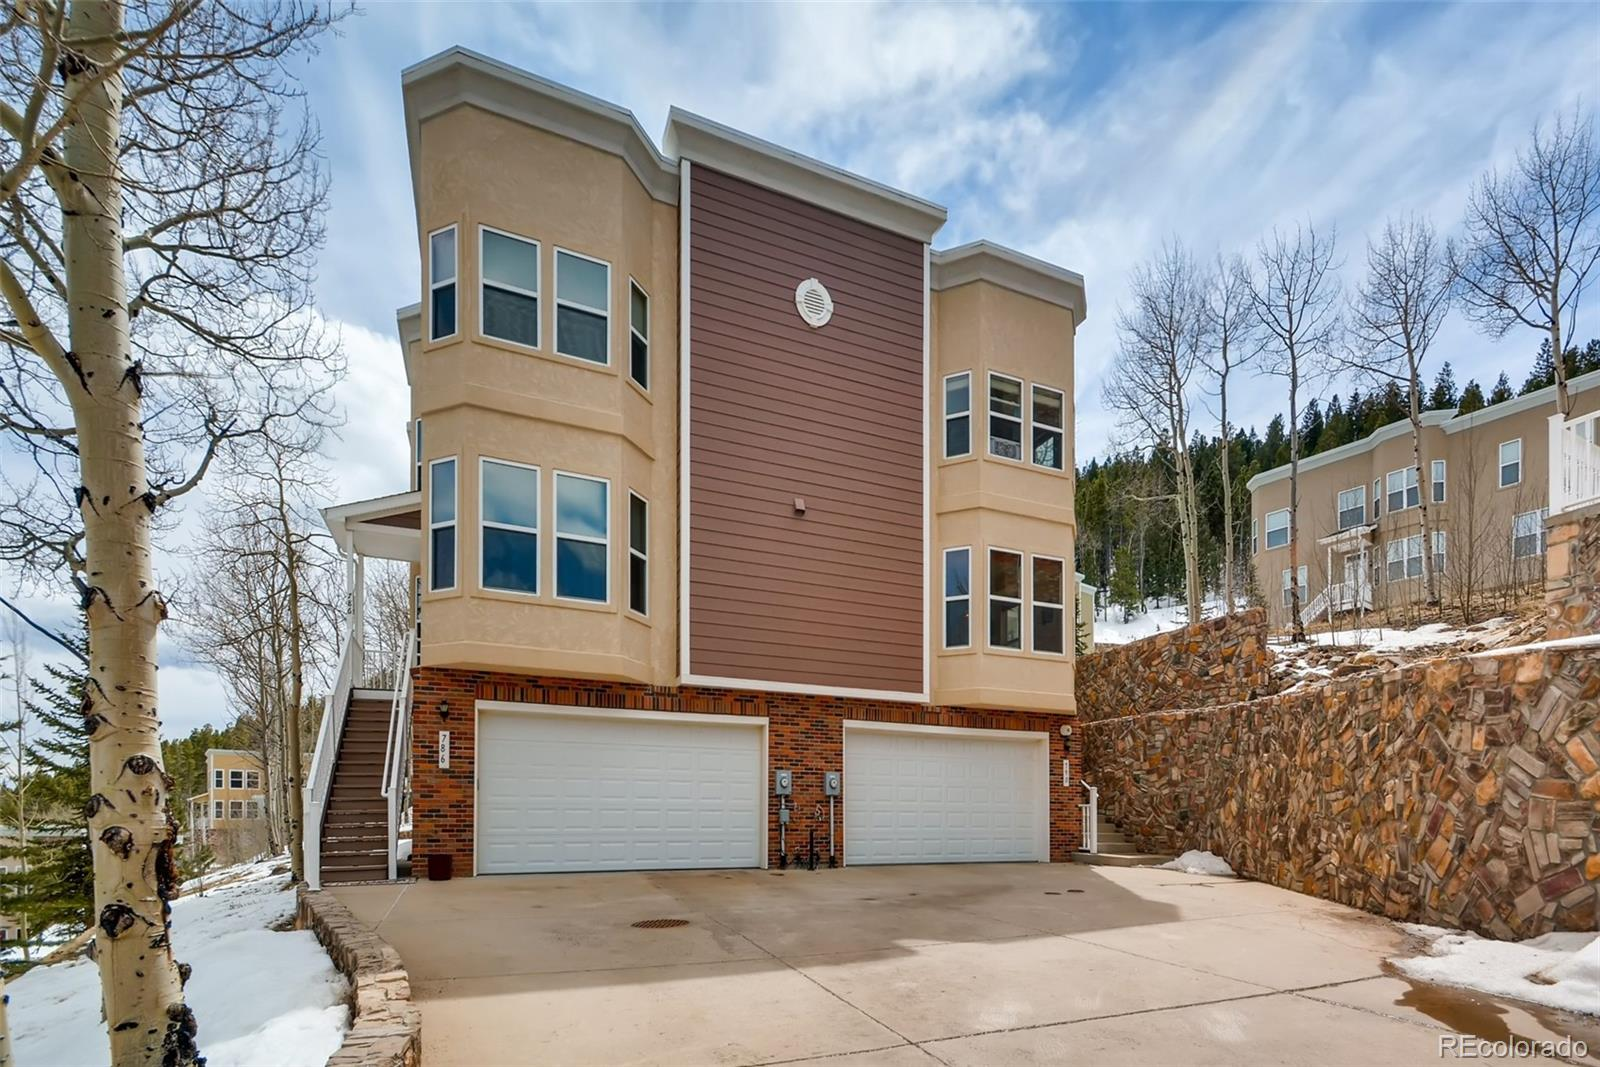 MLS# 2829702 - 1 - 790 Jake Drive, Central City, CO 80427